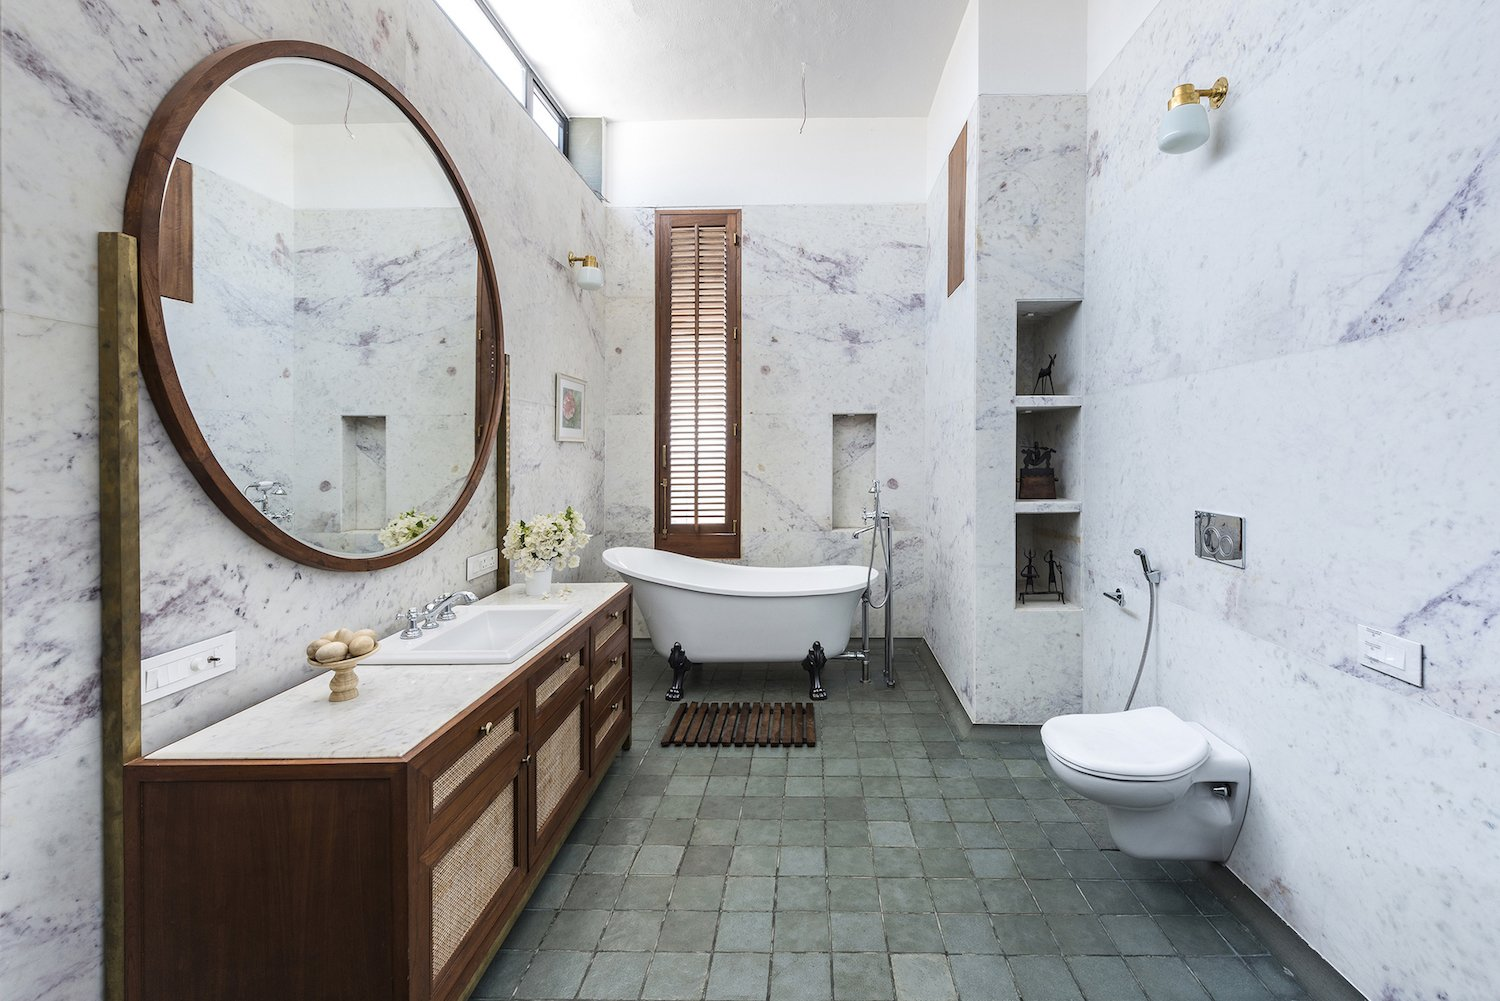 Bath, Wall, Drop In, Open, Freestanding, Marble, and One Piece A luxurious bathroom with marble walls and earthy timber elements.  Best Bath Marble Wall Photos from A Modern Home in India Evokes Emotion With a Giant 4-Ton Rock